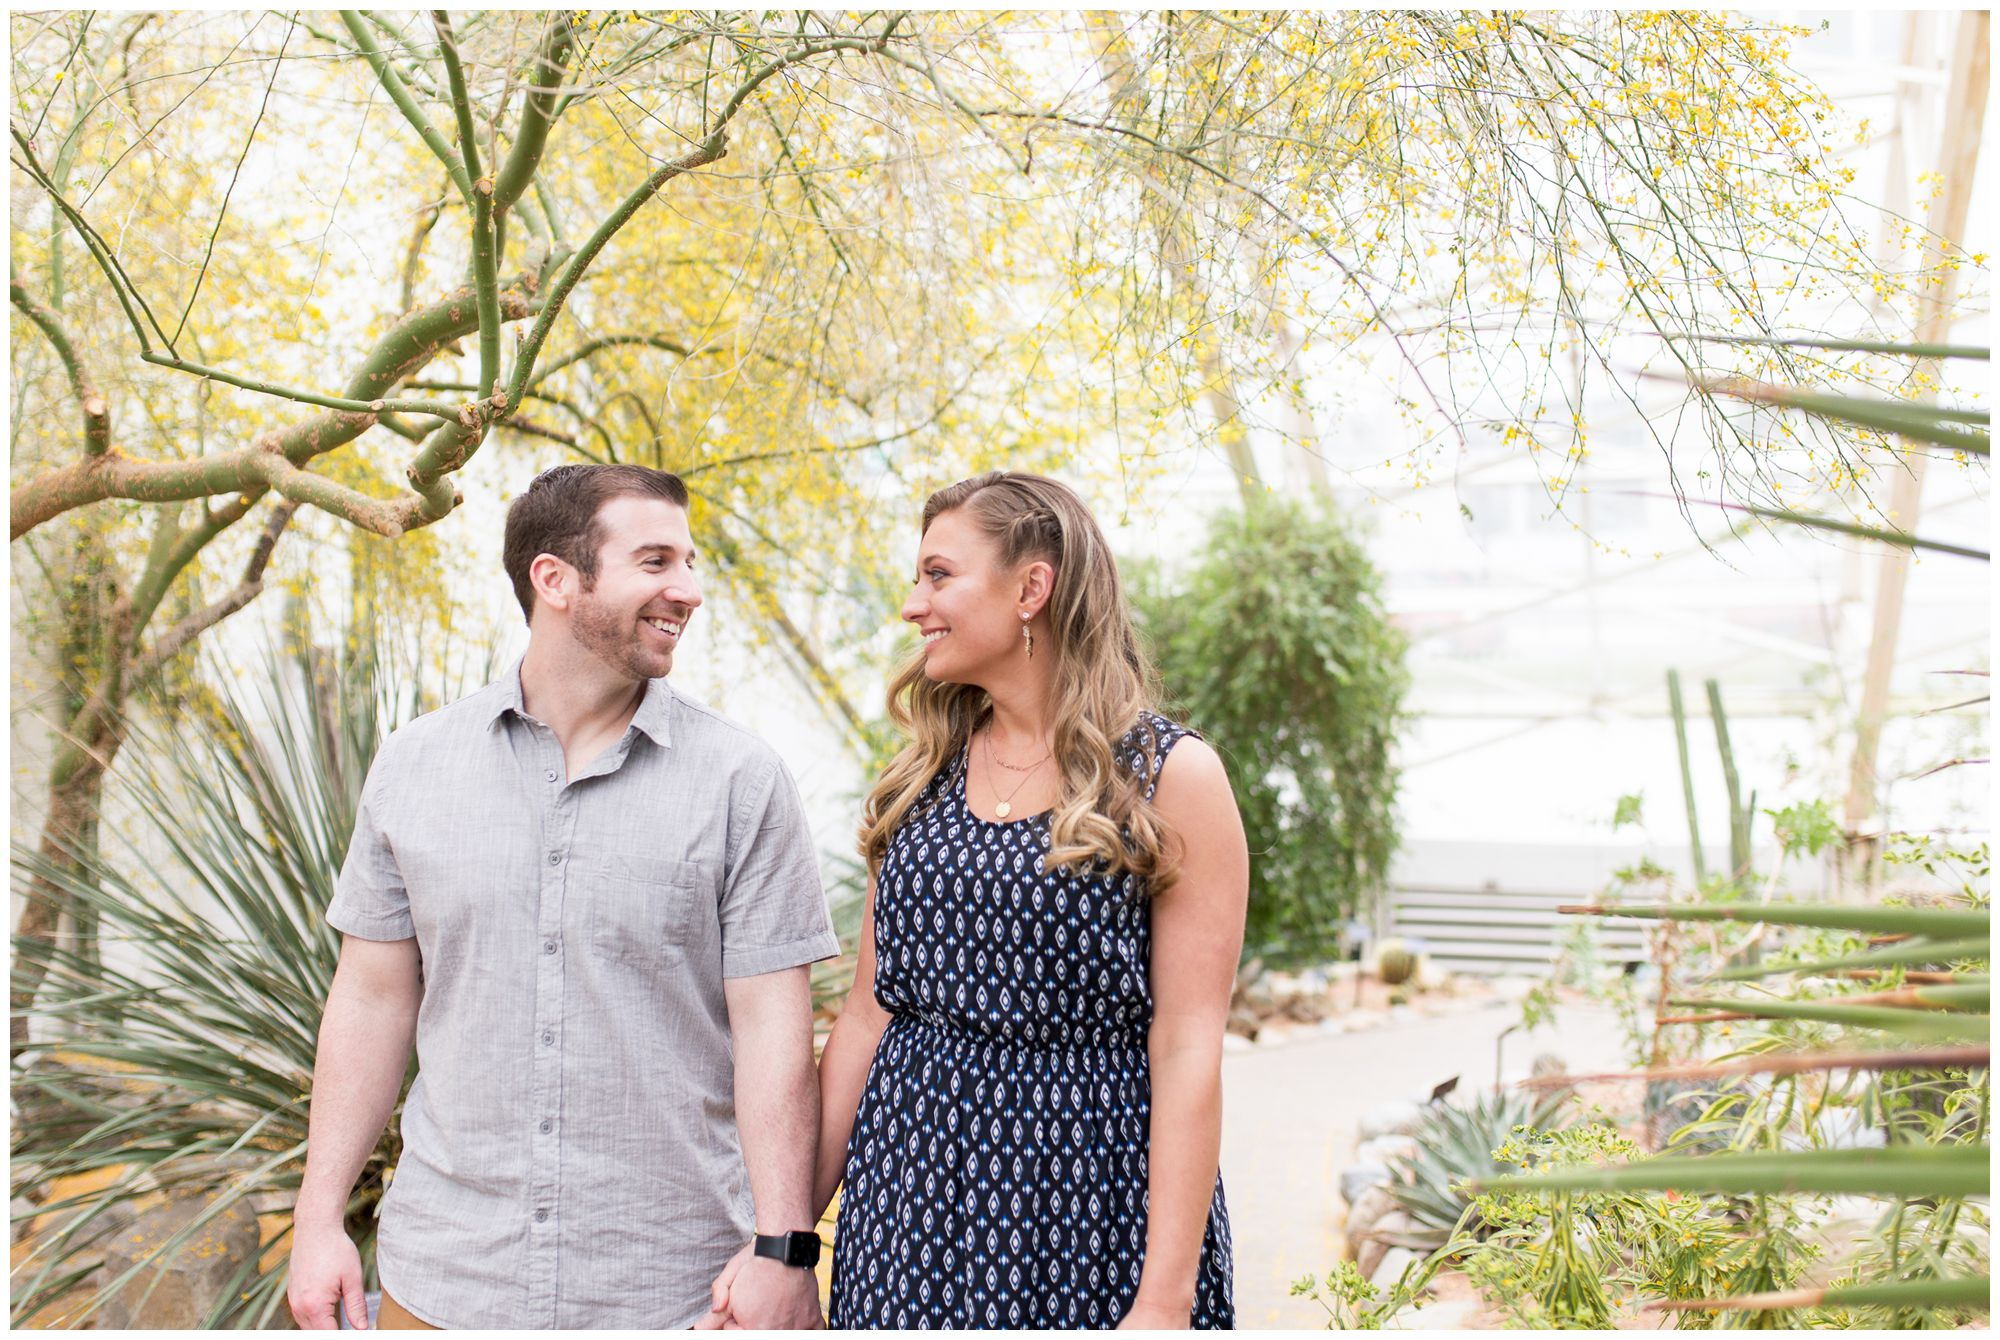 couple looks at each other during engagement session at Foellinger-Freimann Botanical Conservatory in Fort Wayne Indiana